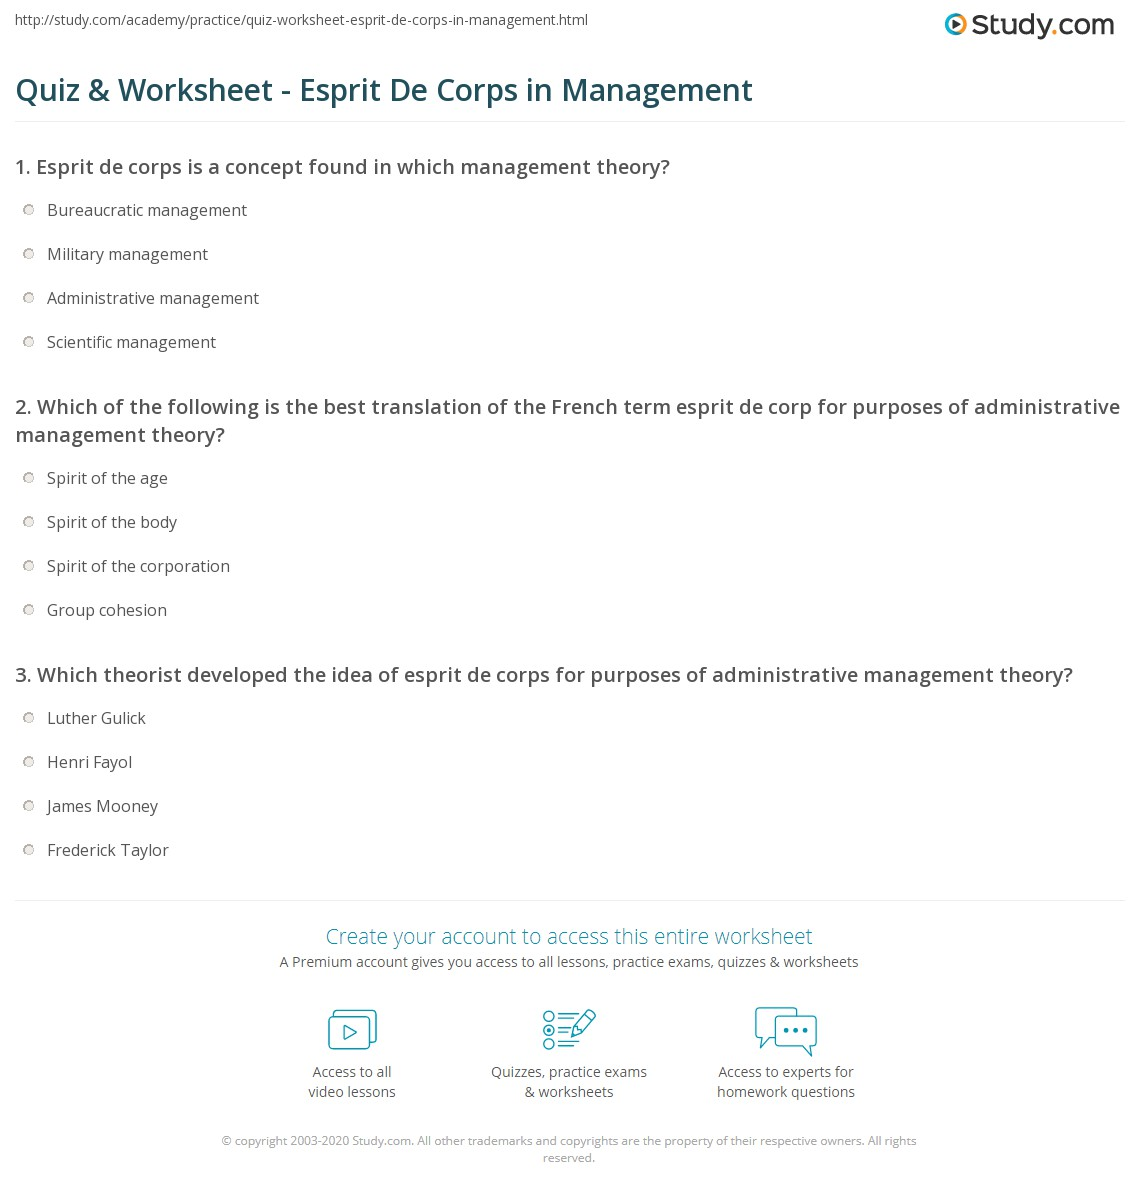 quiz & worksheet - esprit de corps in management | study